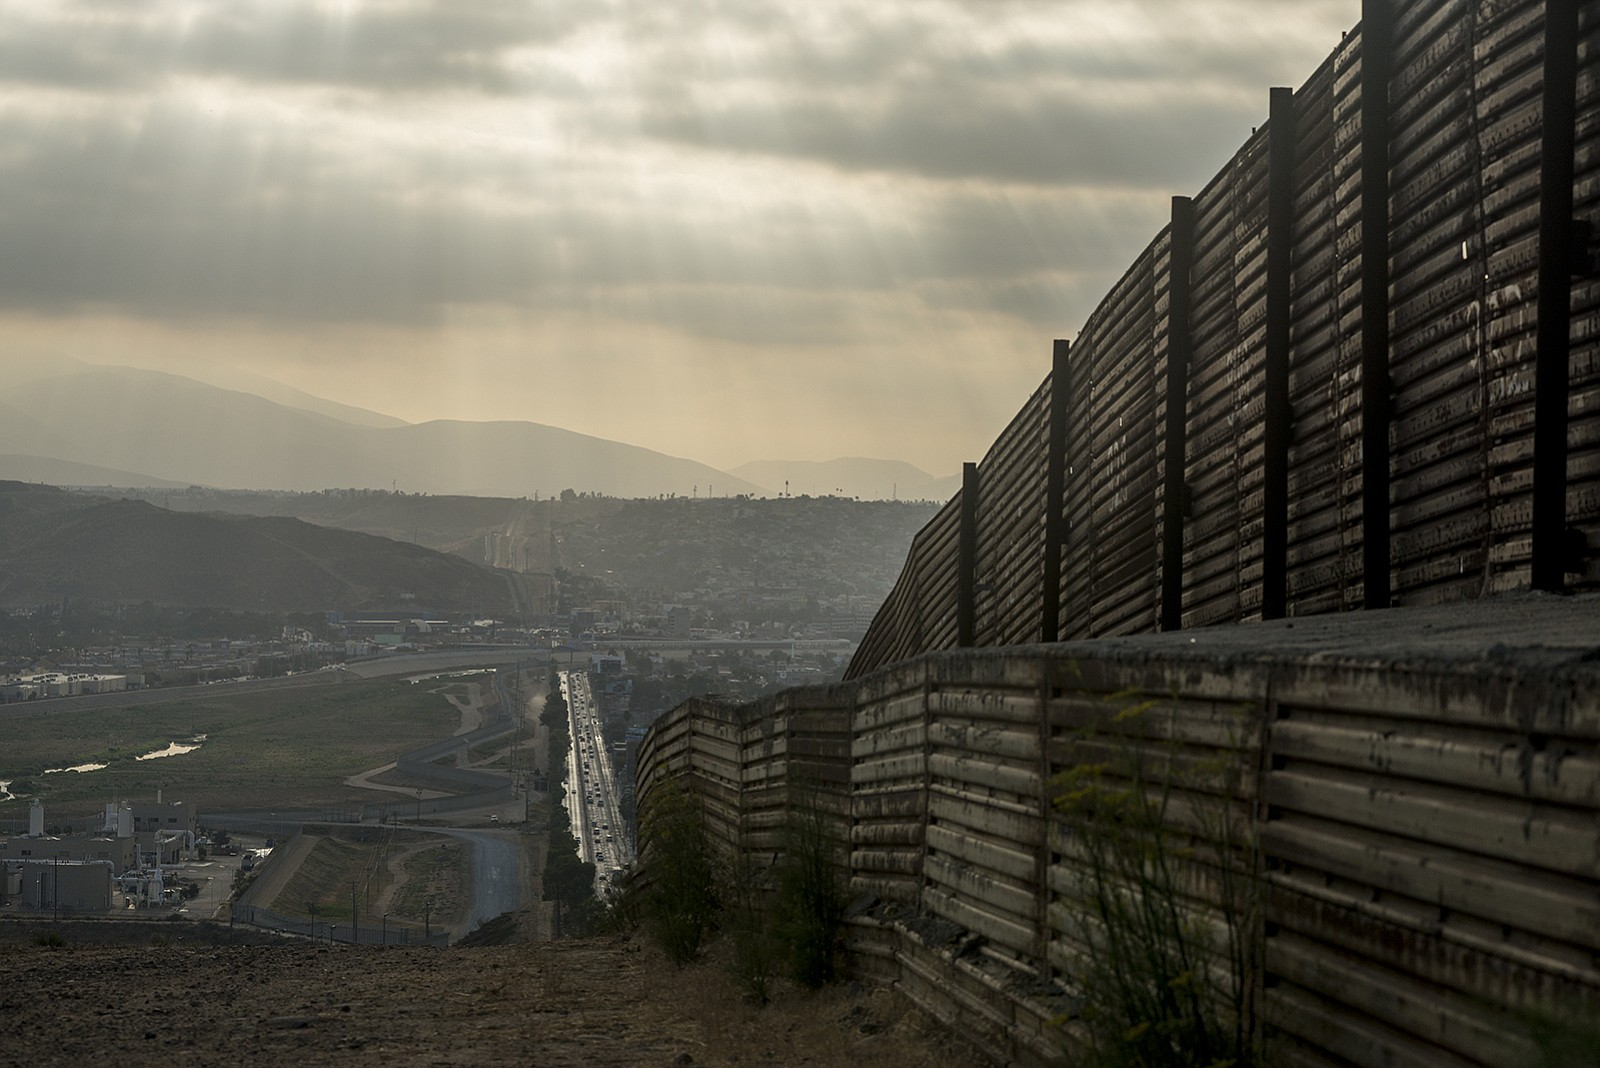 The majority of the primary fencing along the U.S.-Mexico border in San Diego...